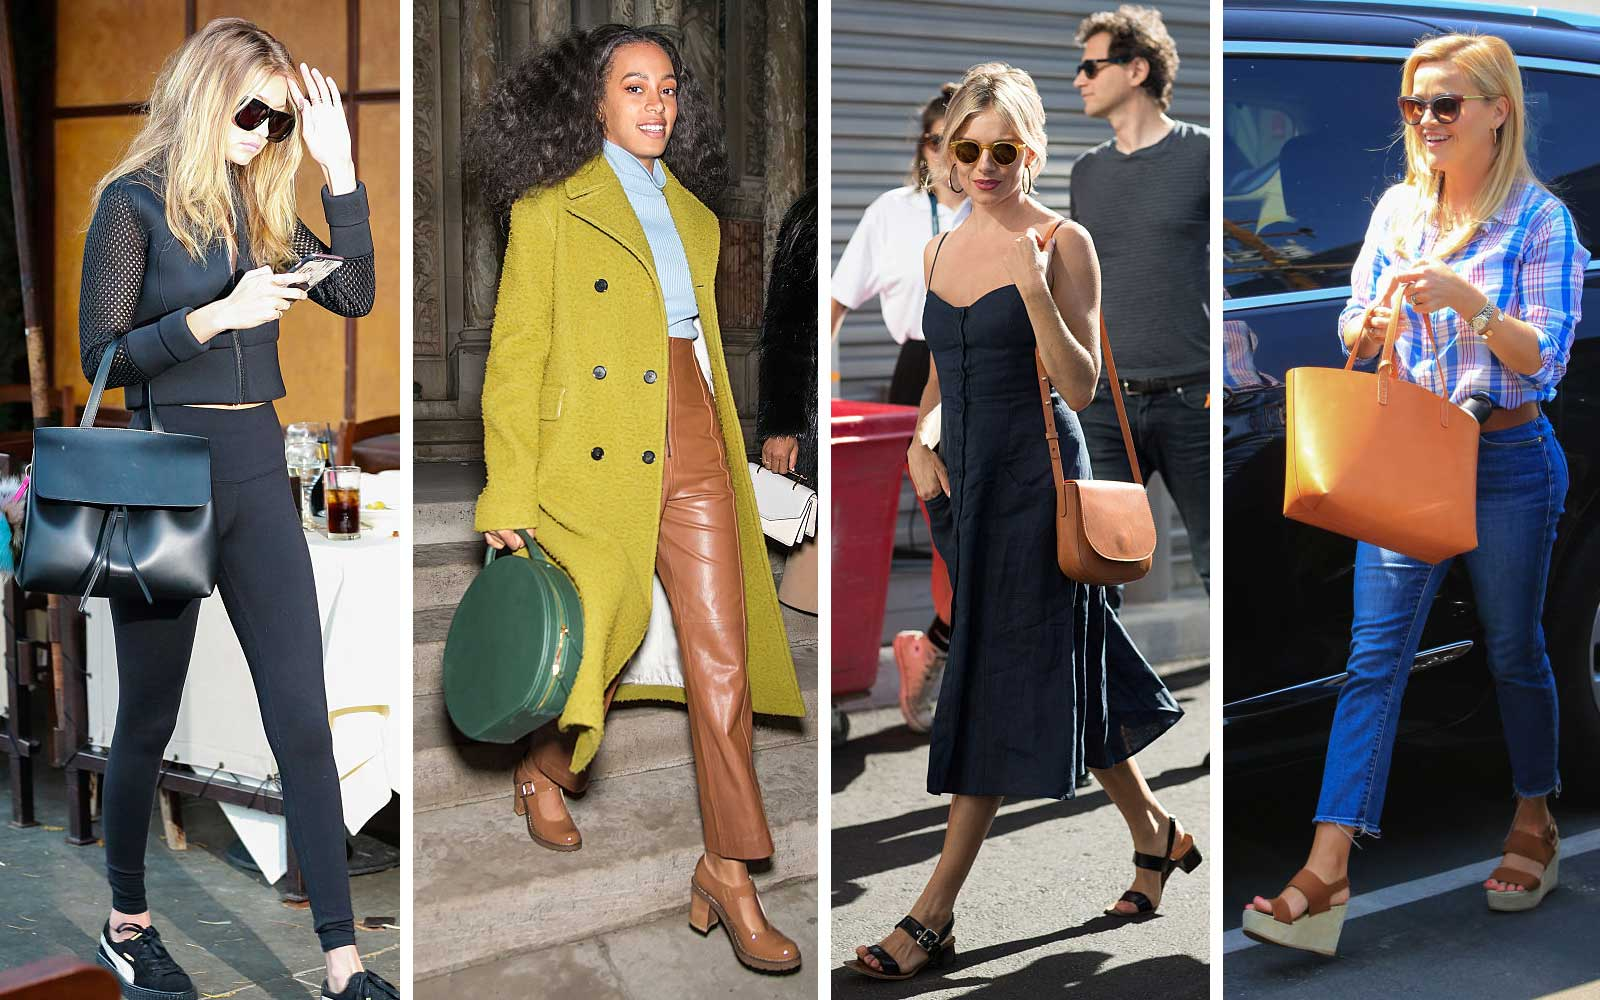 Gigi Hadid, Solange Knowles, Sienna Miller, and Reese Witherspoon